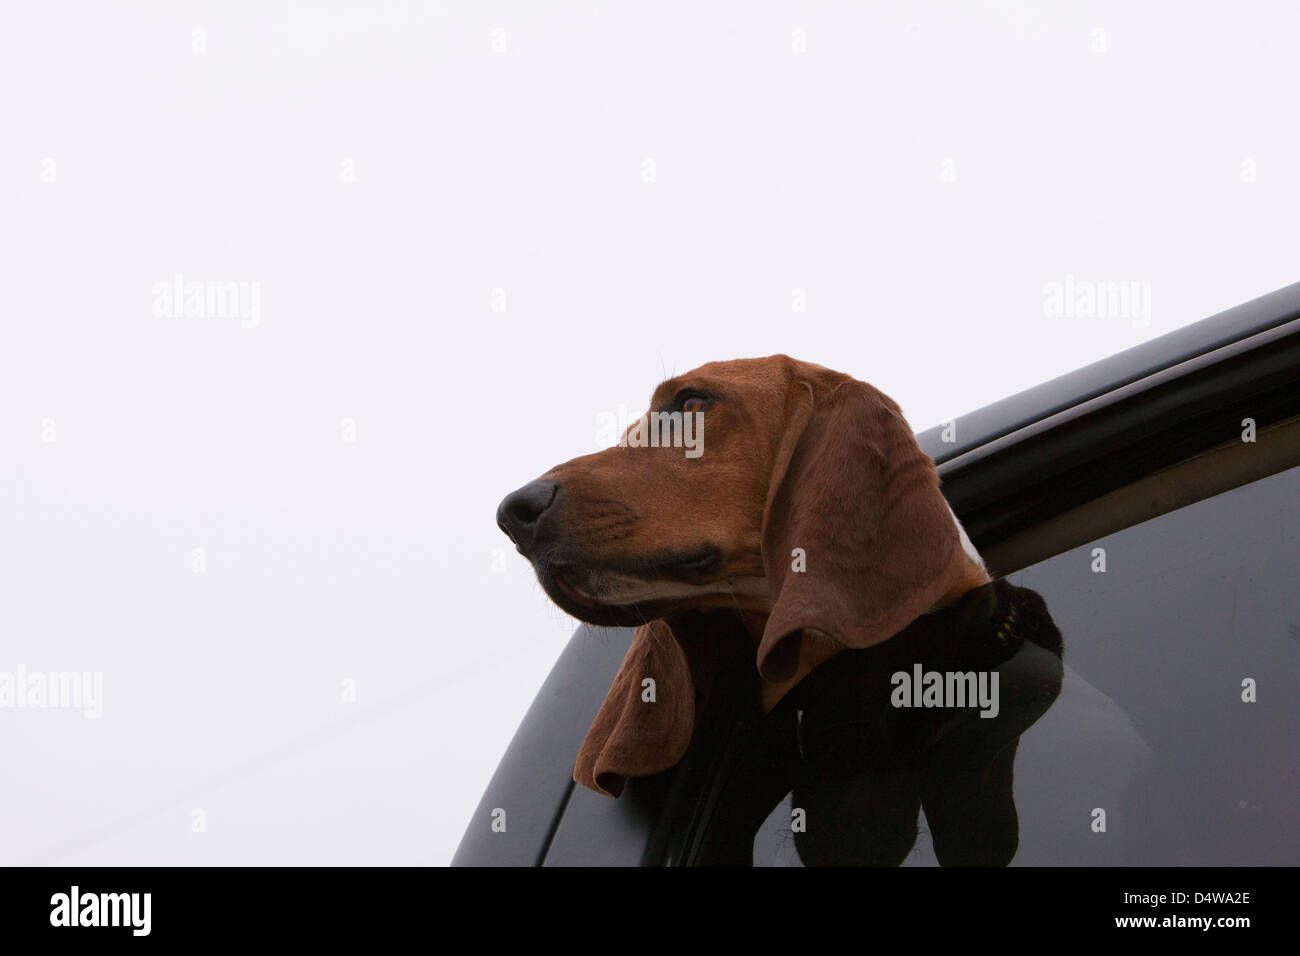 Dog poking head out car window - Stock Image